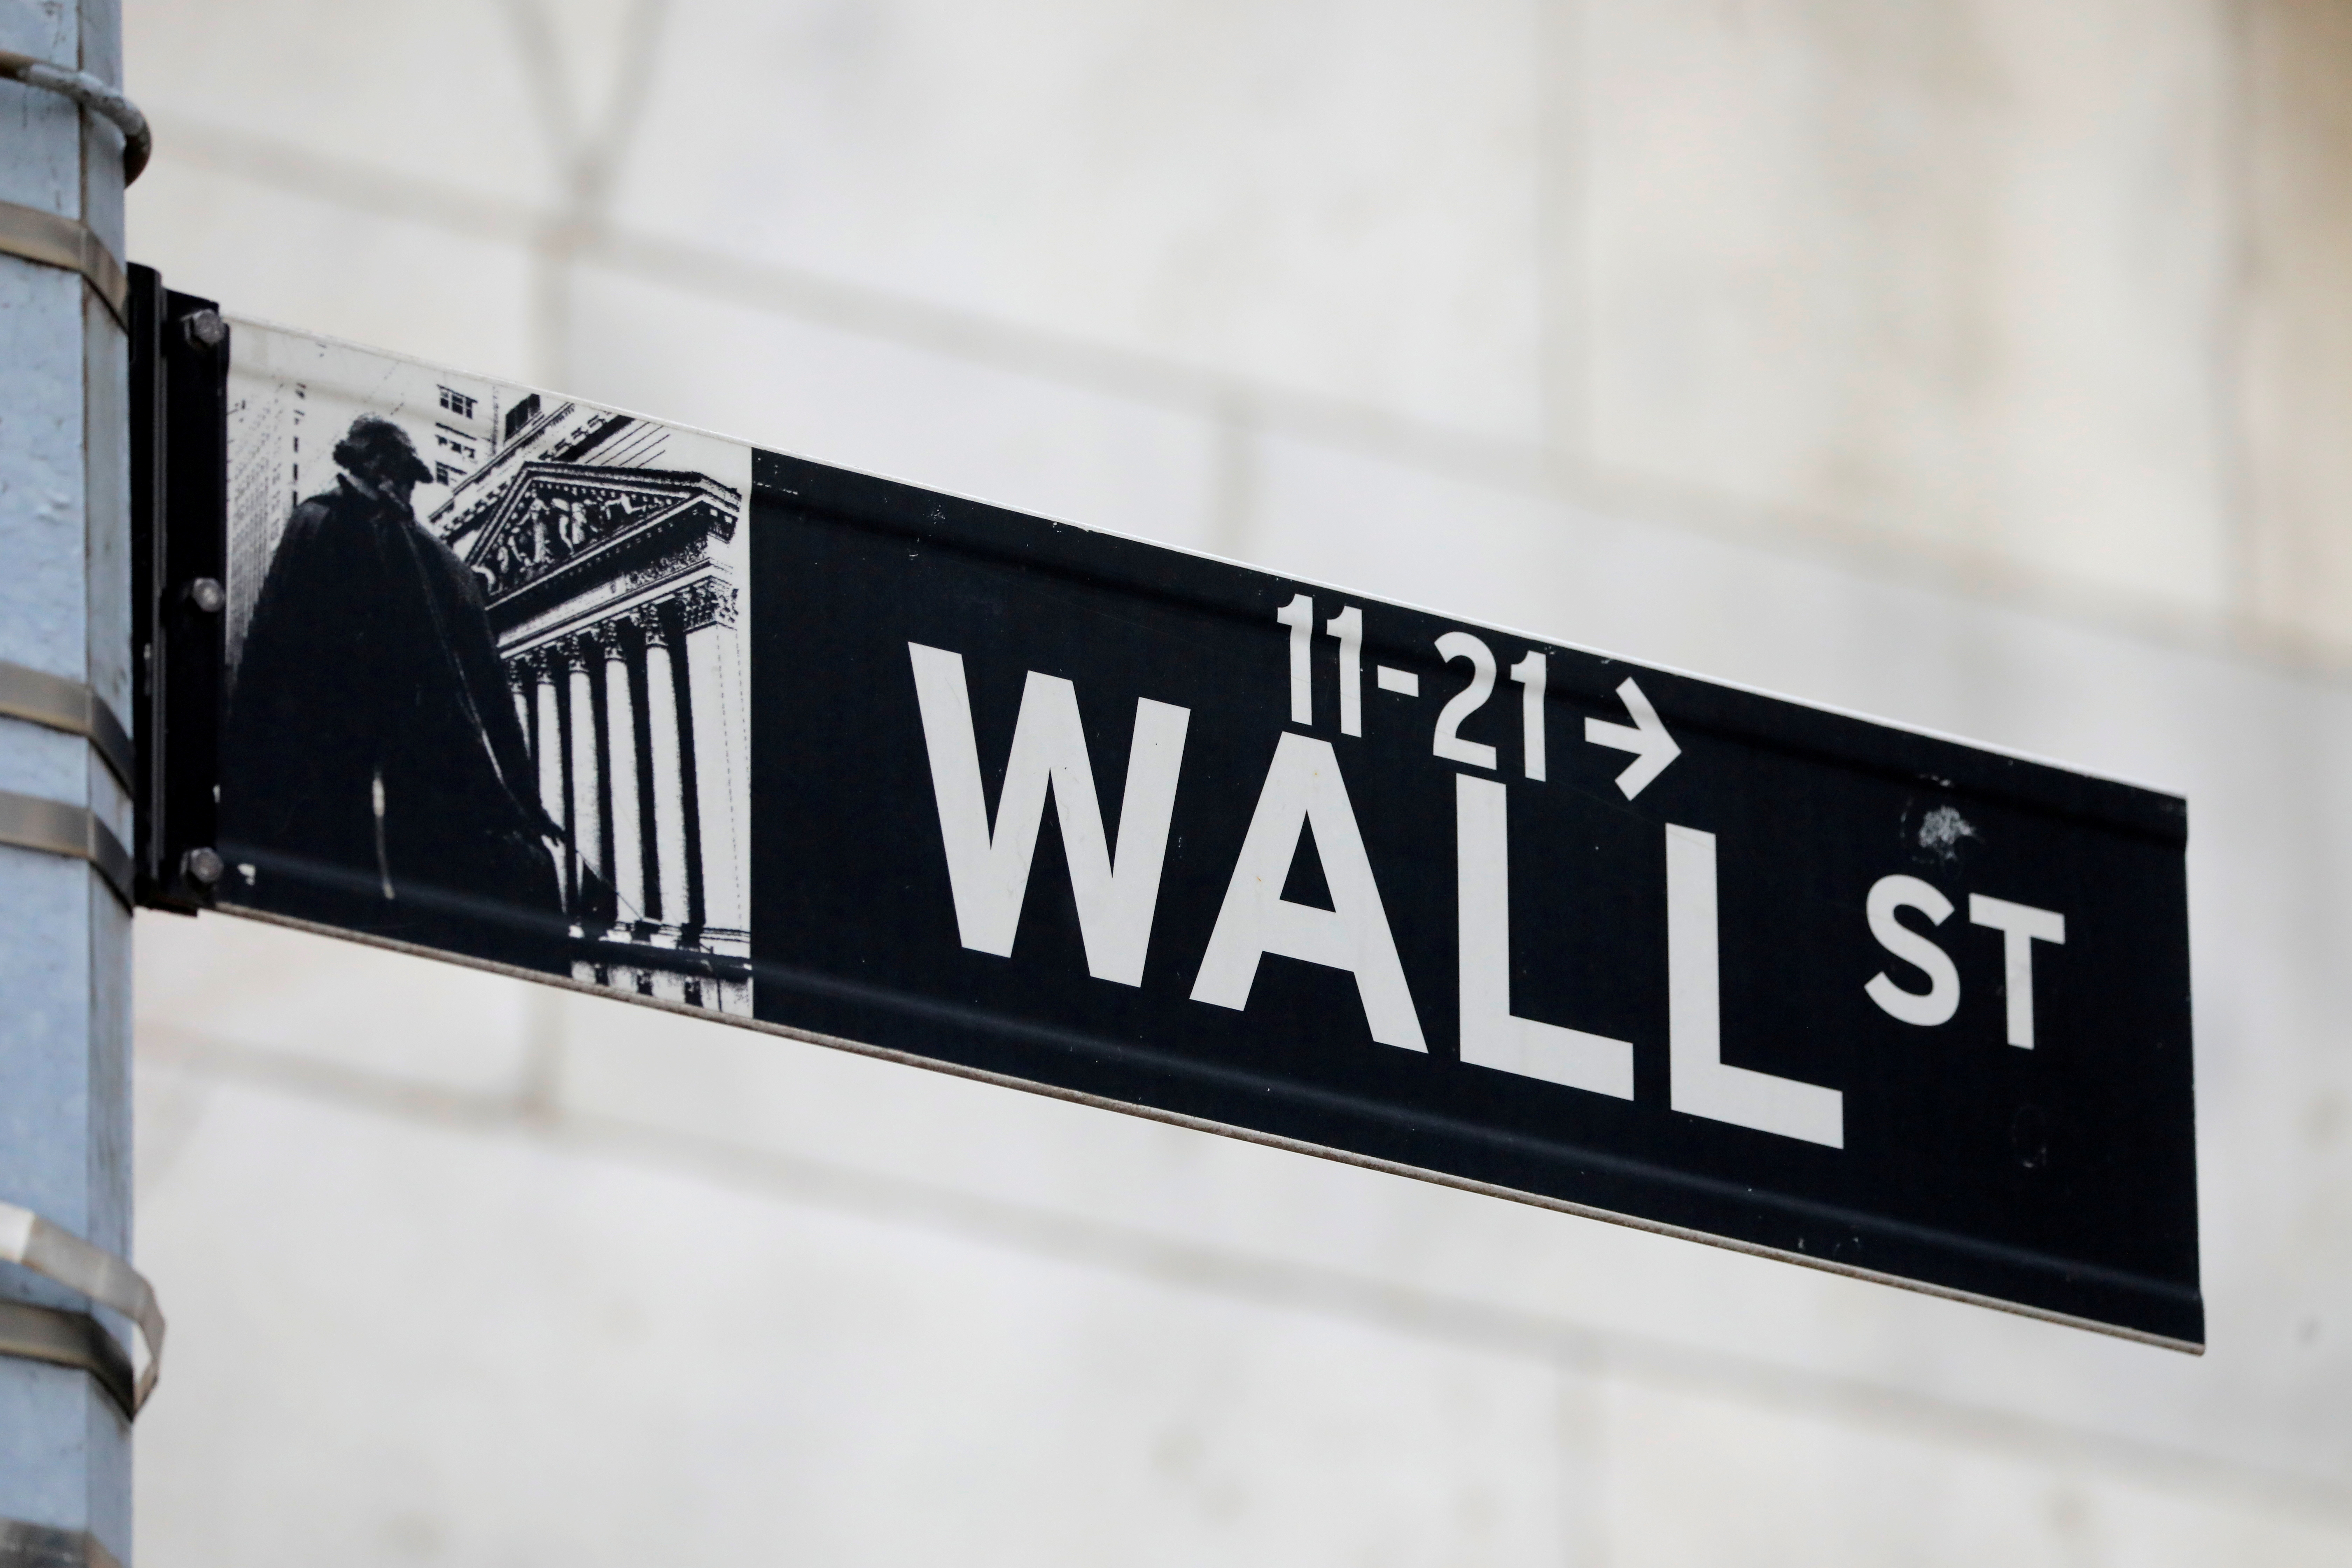 A street sign for Wall Street is seen outside of the New York Stock Exchange (NYSE) in New York City, New York, U.S., June 28, 2021. REUTERS/Andrew Kelly/File Photo